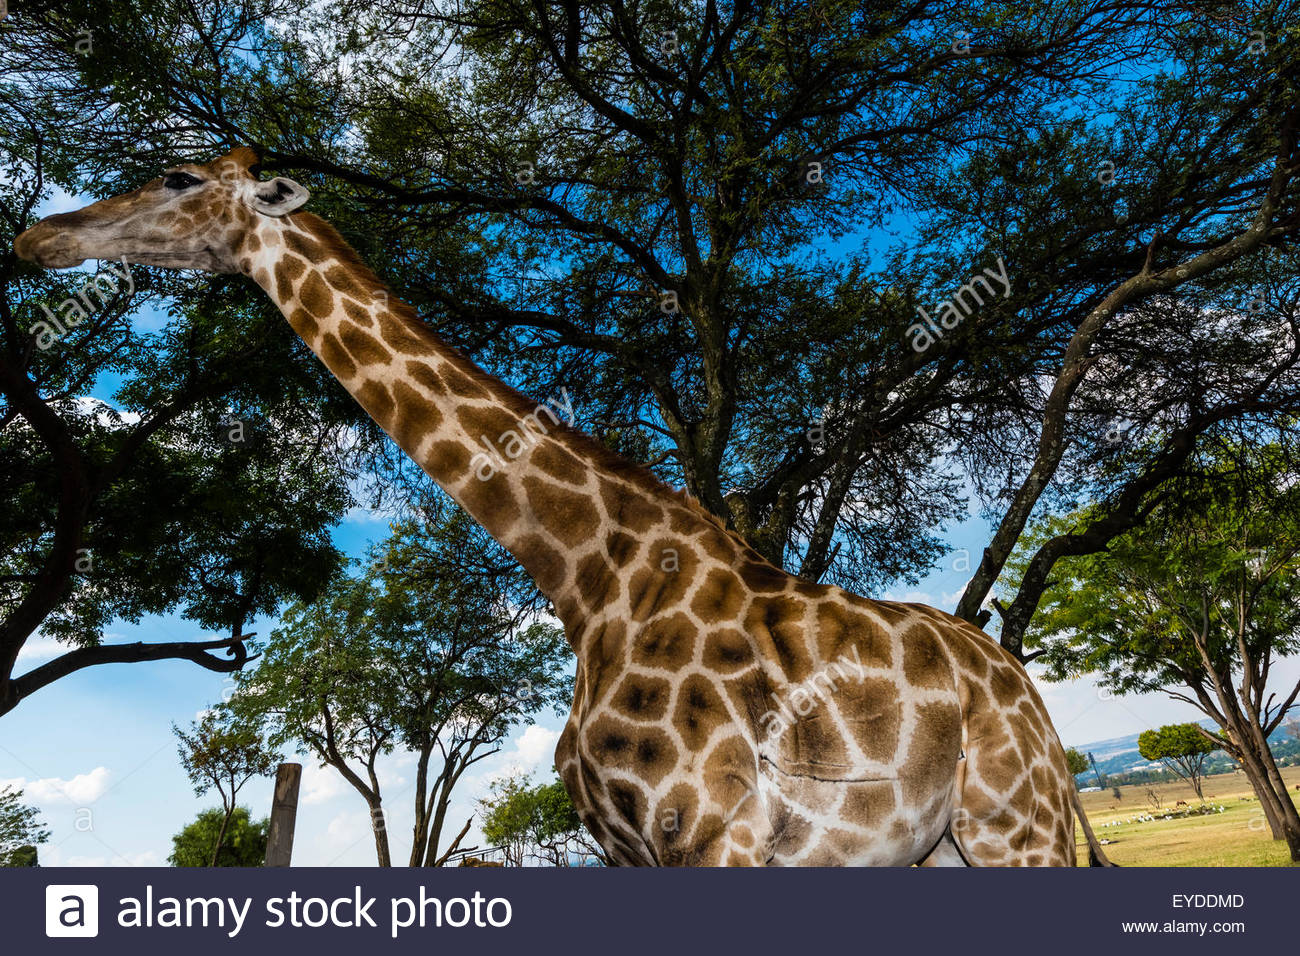 Giraffe, Lion Park, near Johannesburg, South Africa. - Stock Image